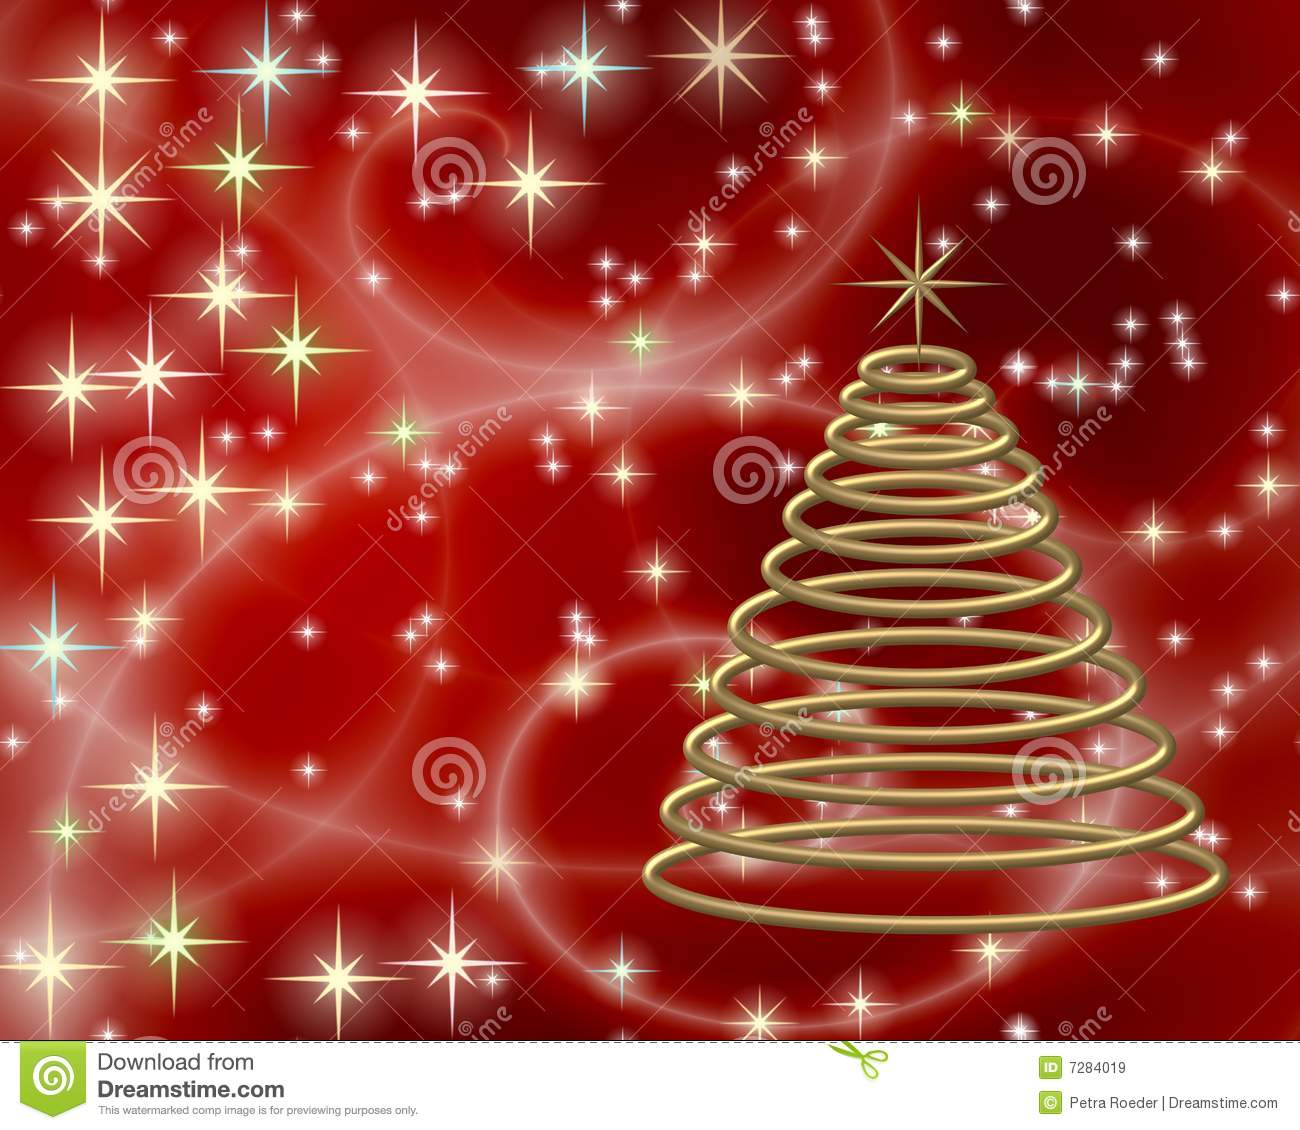 Red And Gold Christmas Trees: Gold Christmas Tree On Red Stock Illustration